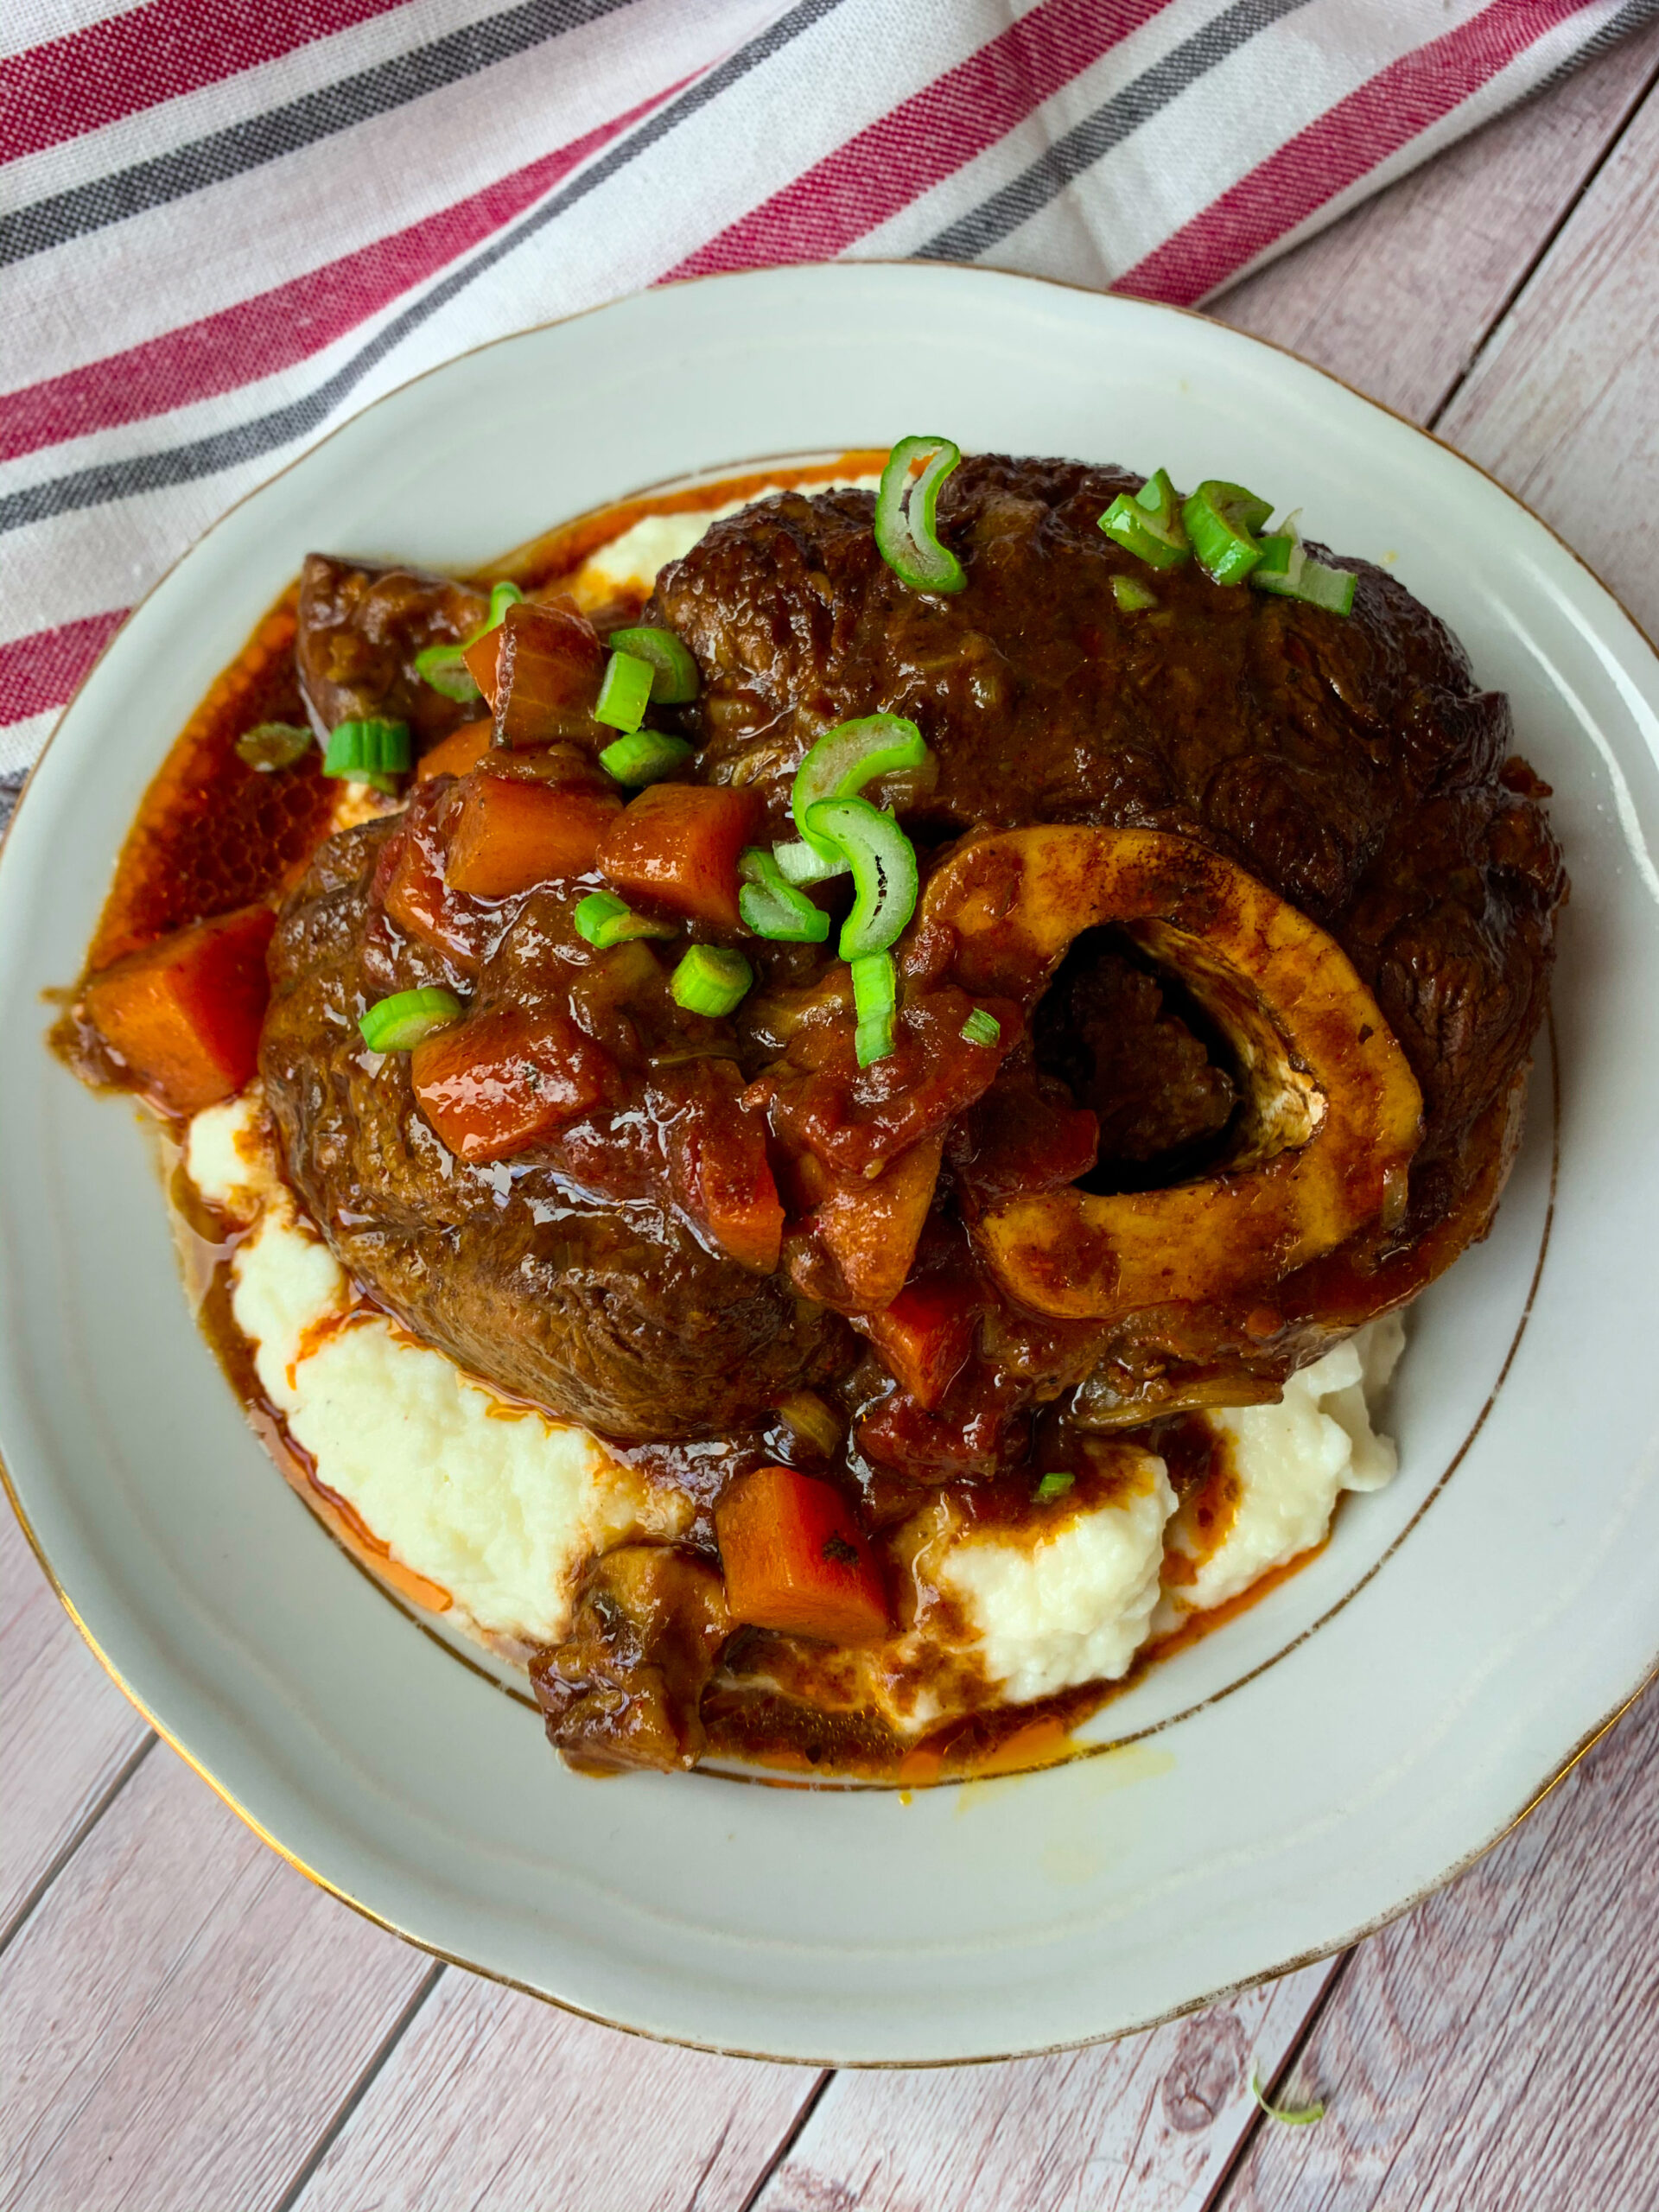 Beef ossobuco or keto osso buco with vegetable stew on a plate with cauliflower mash